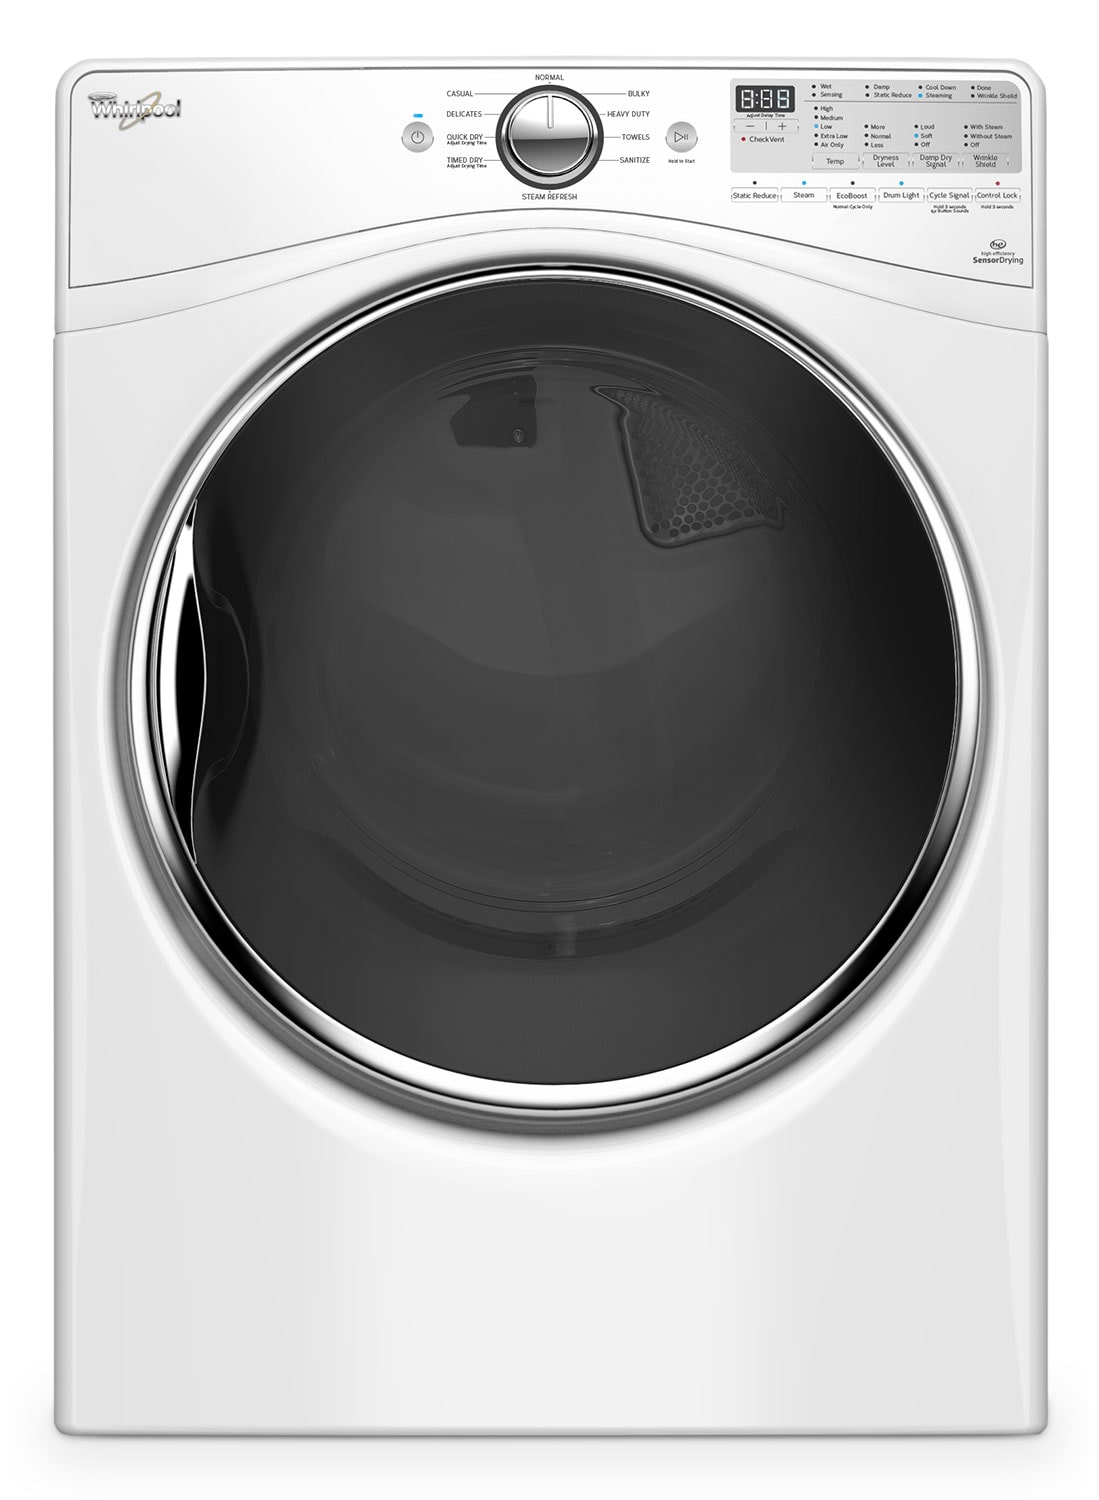 Whirlpool 7.4 Cu. Ft. Electric Dryer – YWED92HEFW